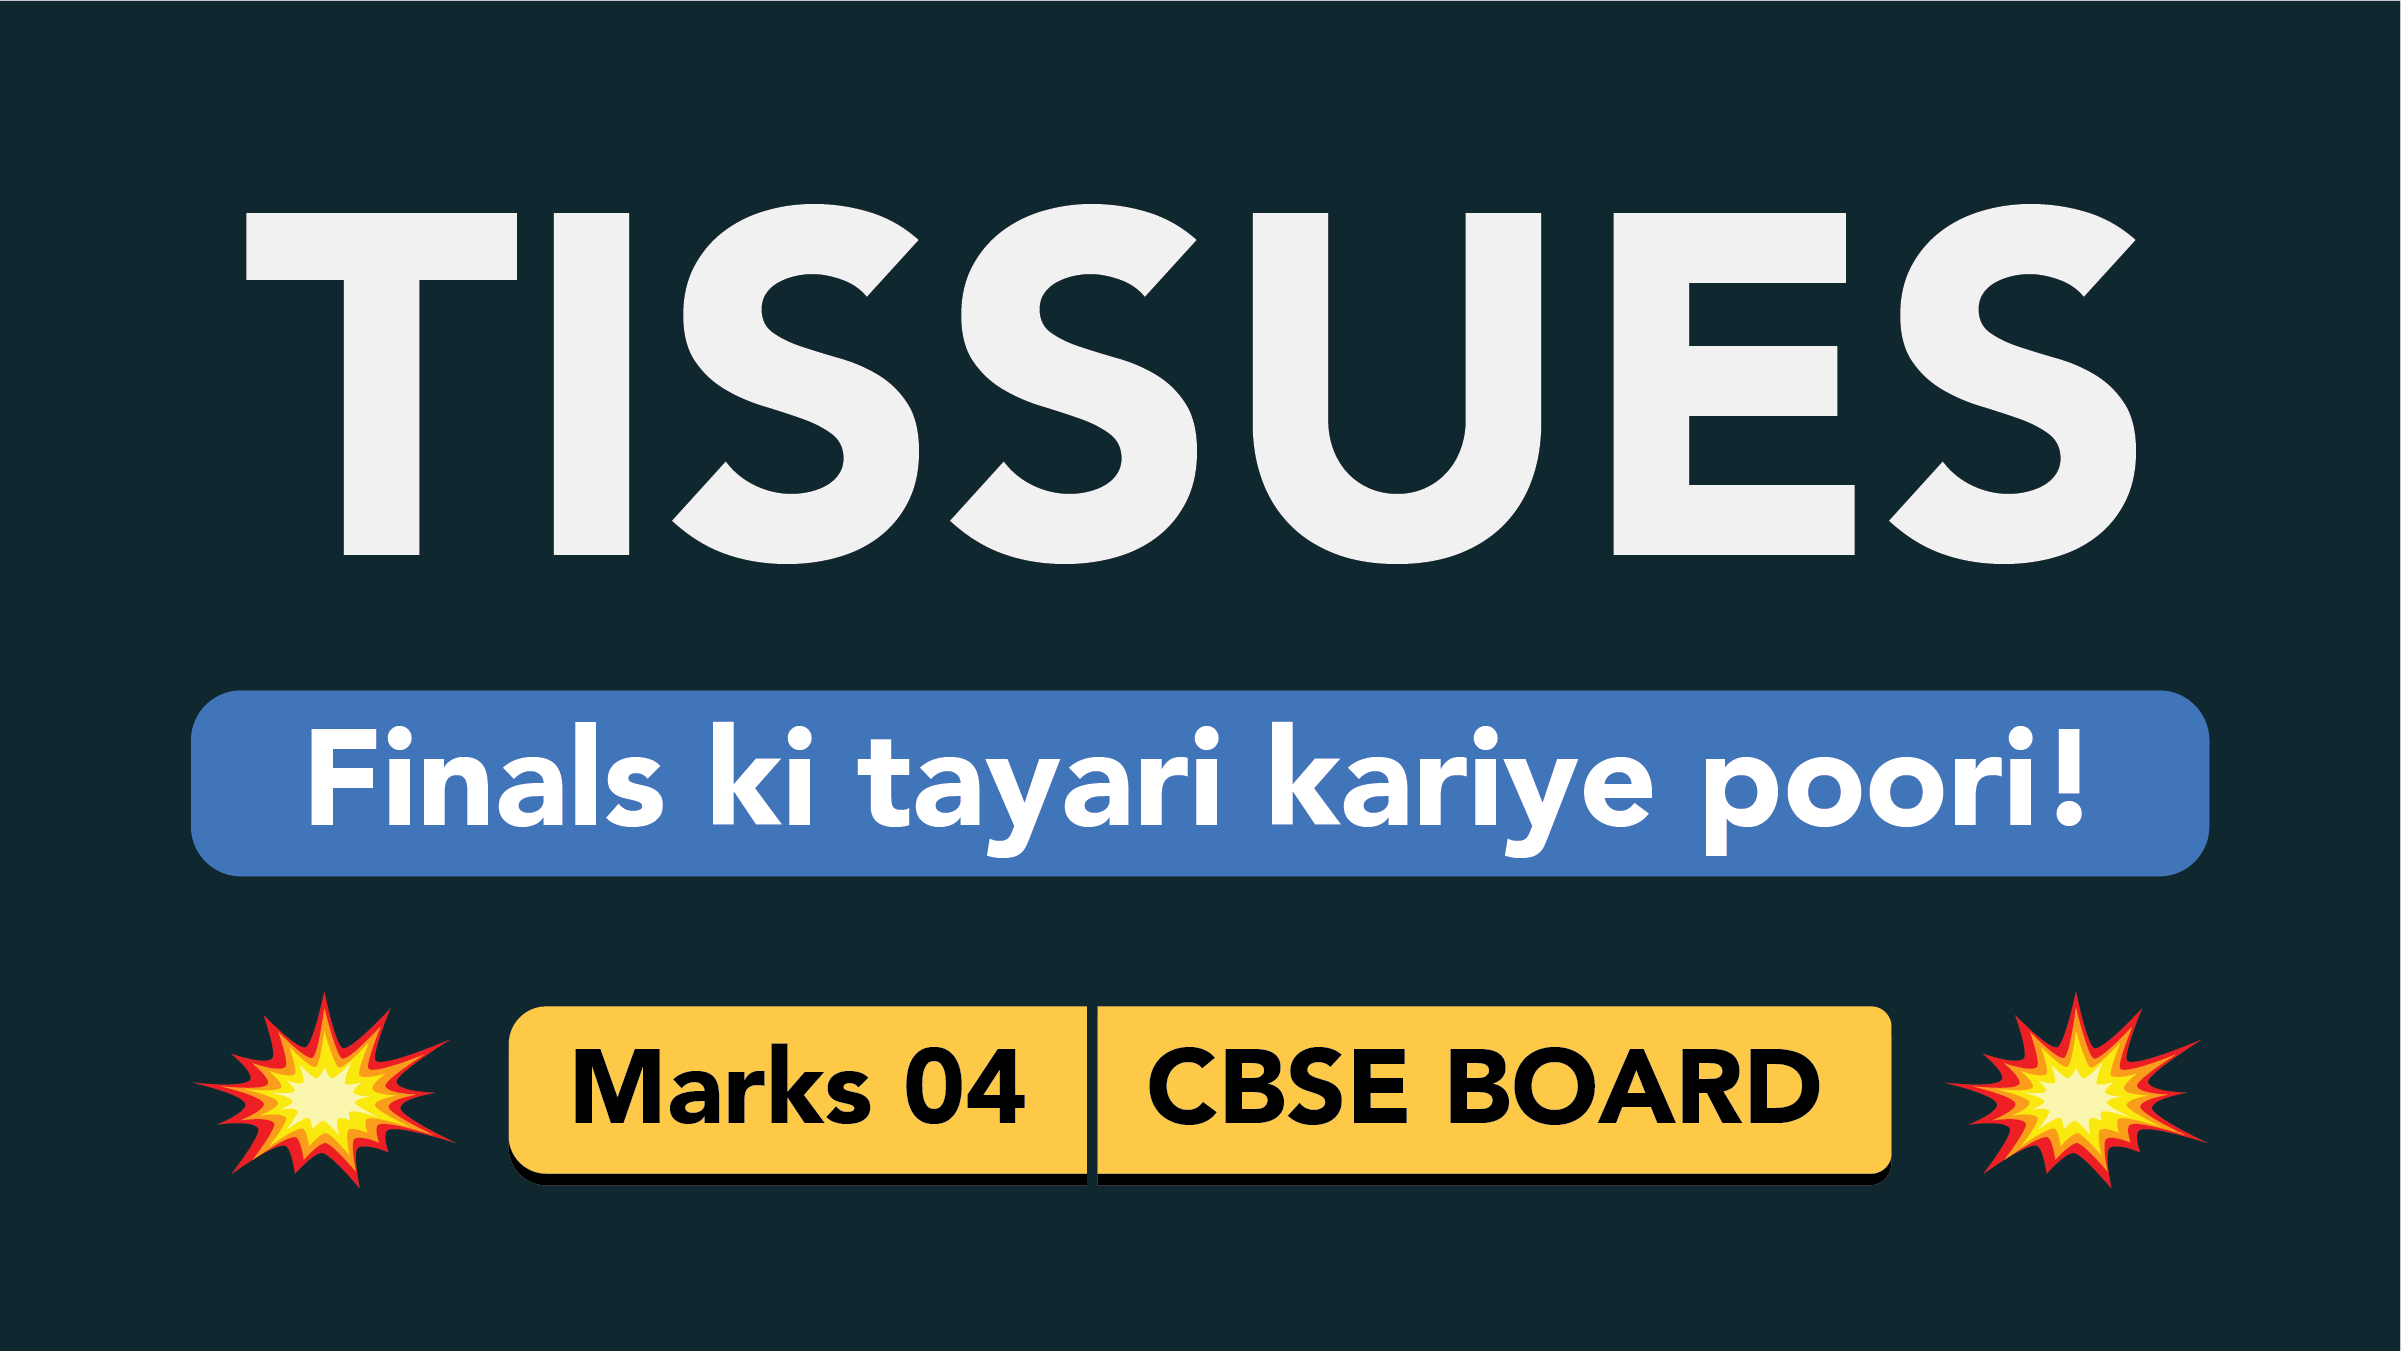 CBSE Board Class 9 TISSUES || Weightage and Important Topics